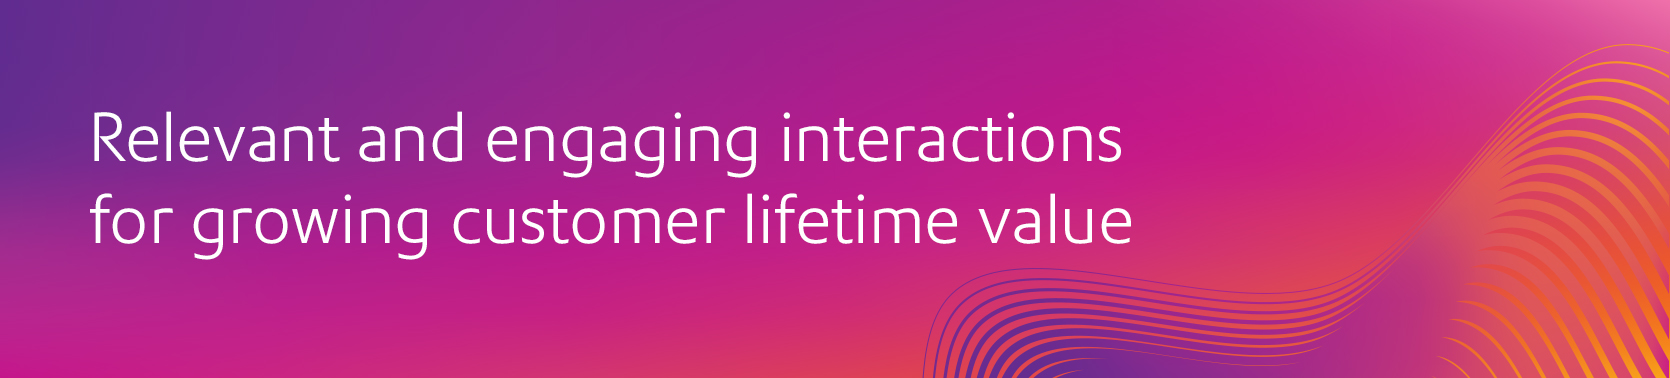 Relevant and engaging interactions for growing customer lifetime value